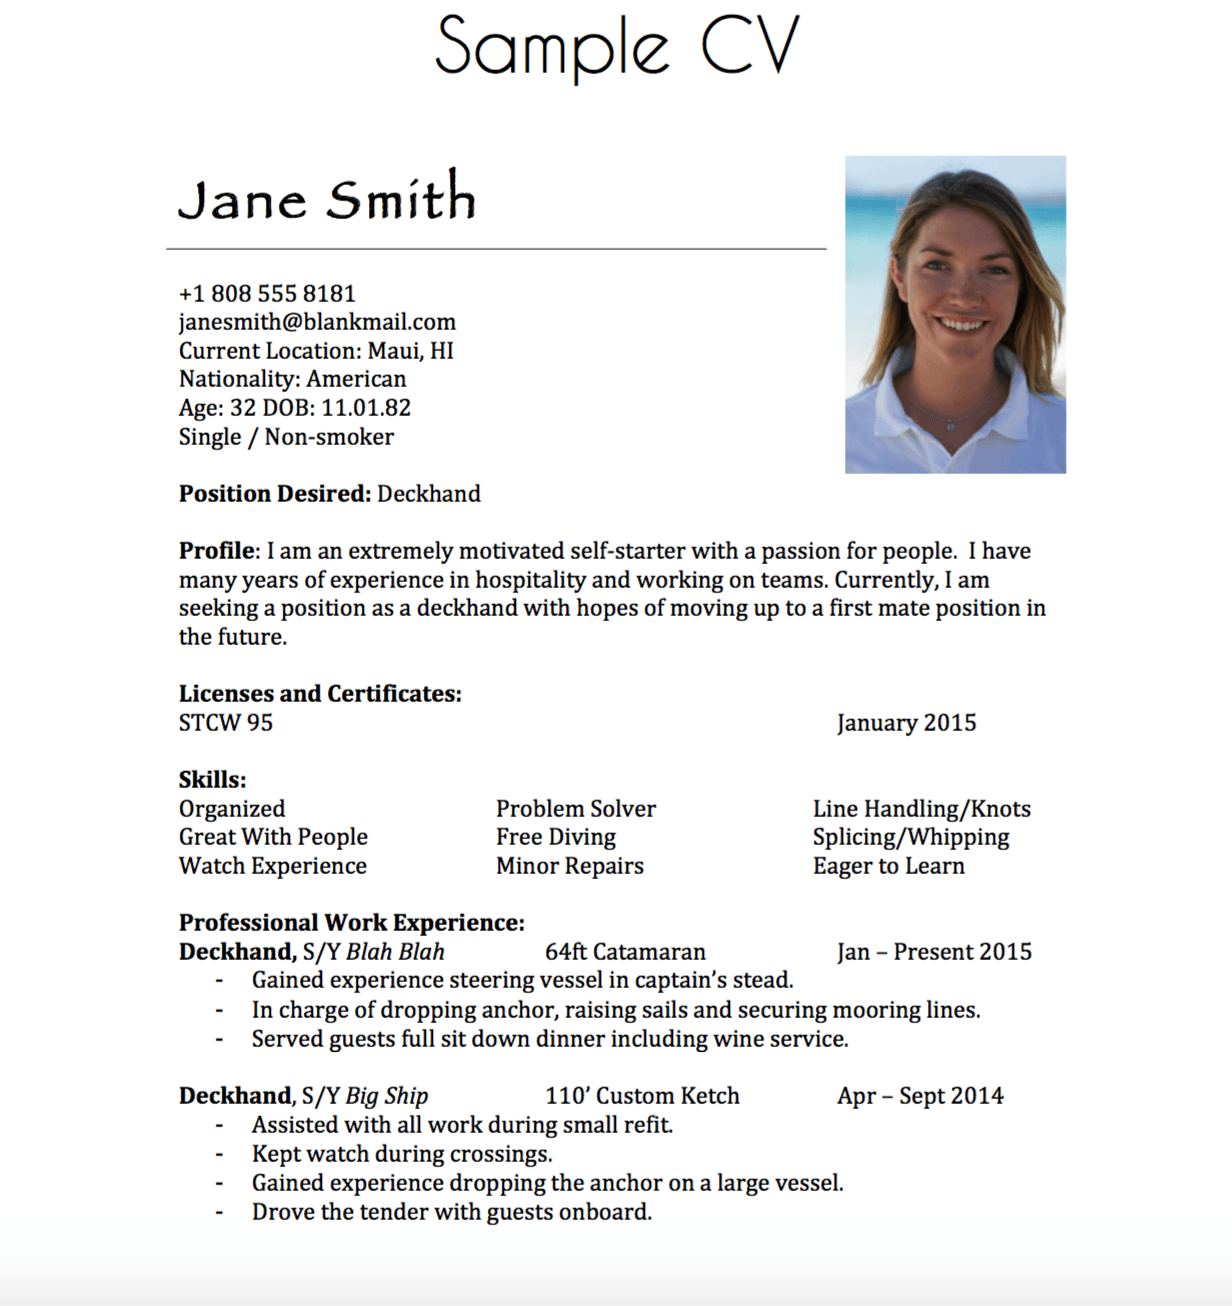 Here's a Sample CV: